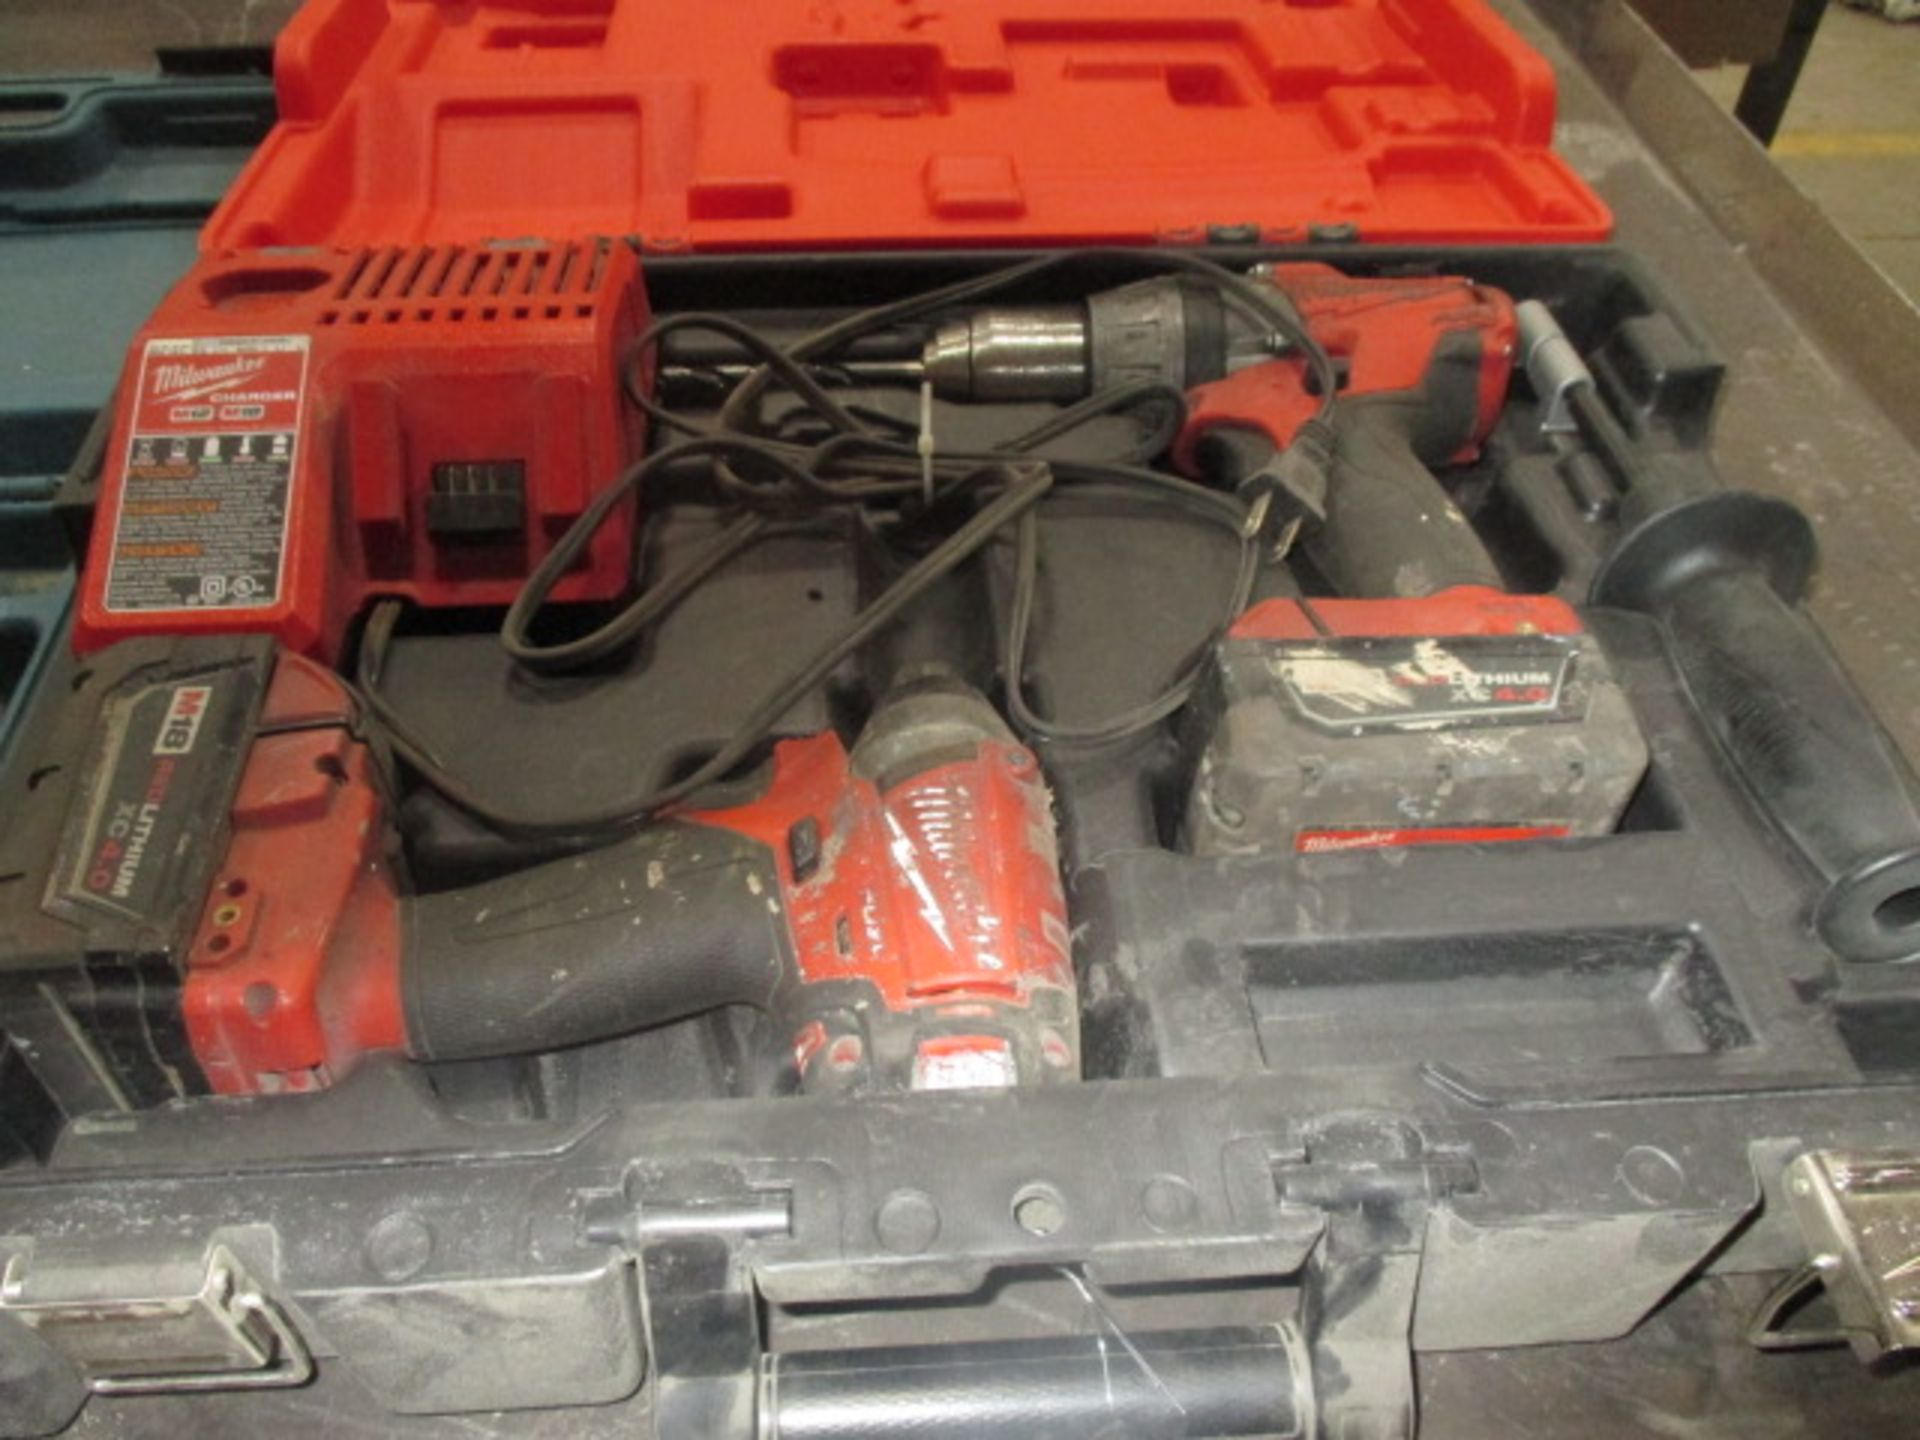 Lot 214 - Milwaukee Drill Set with Charger and 2 Batteries and Makita Jig Saw